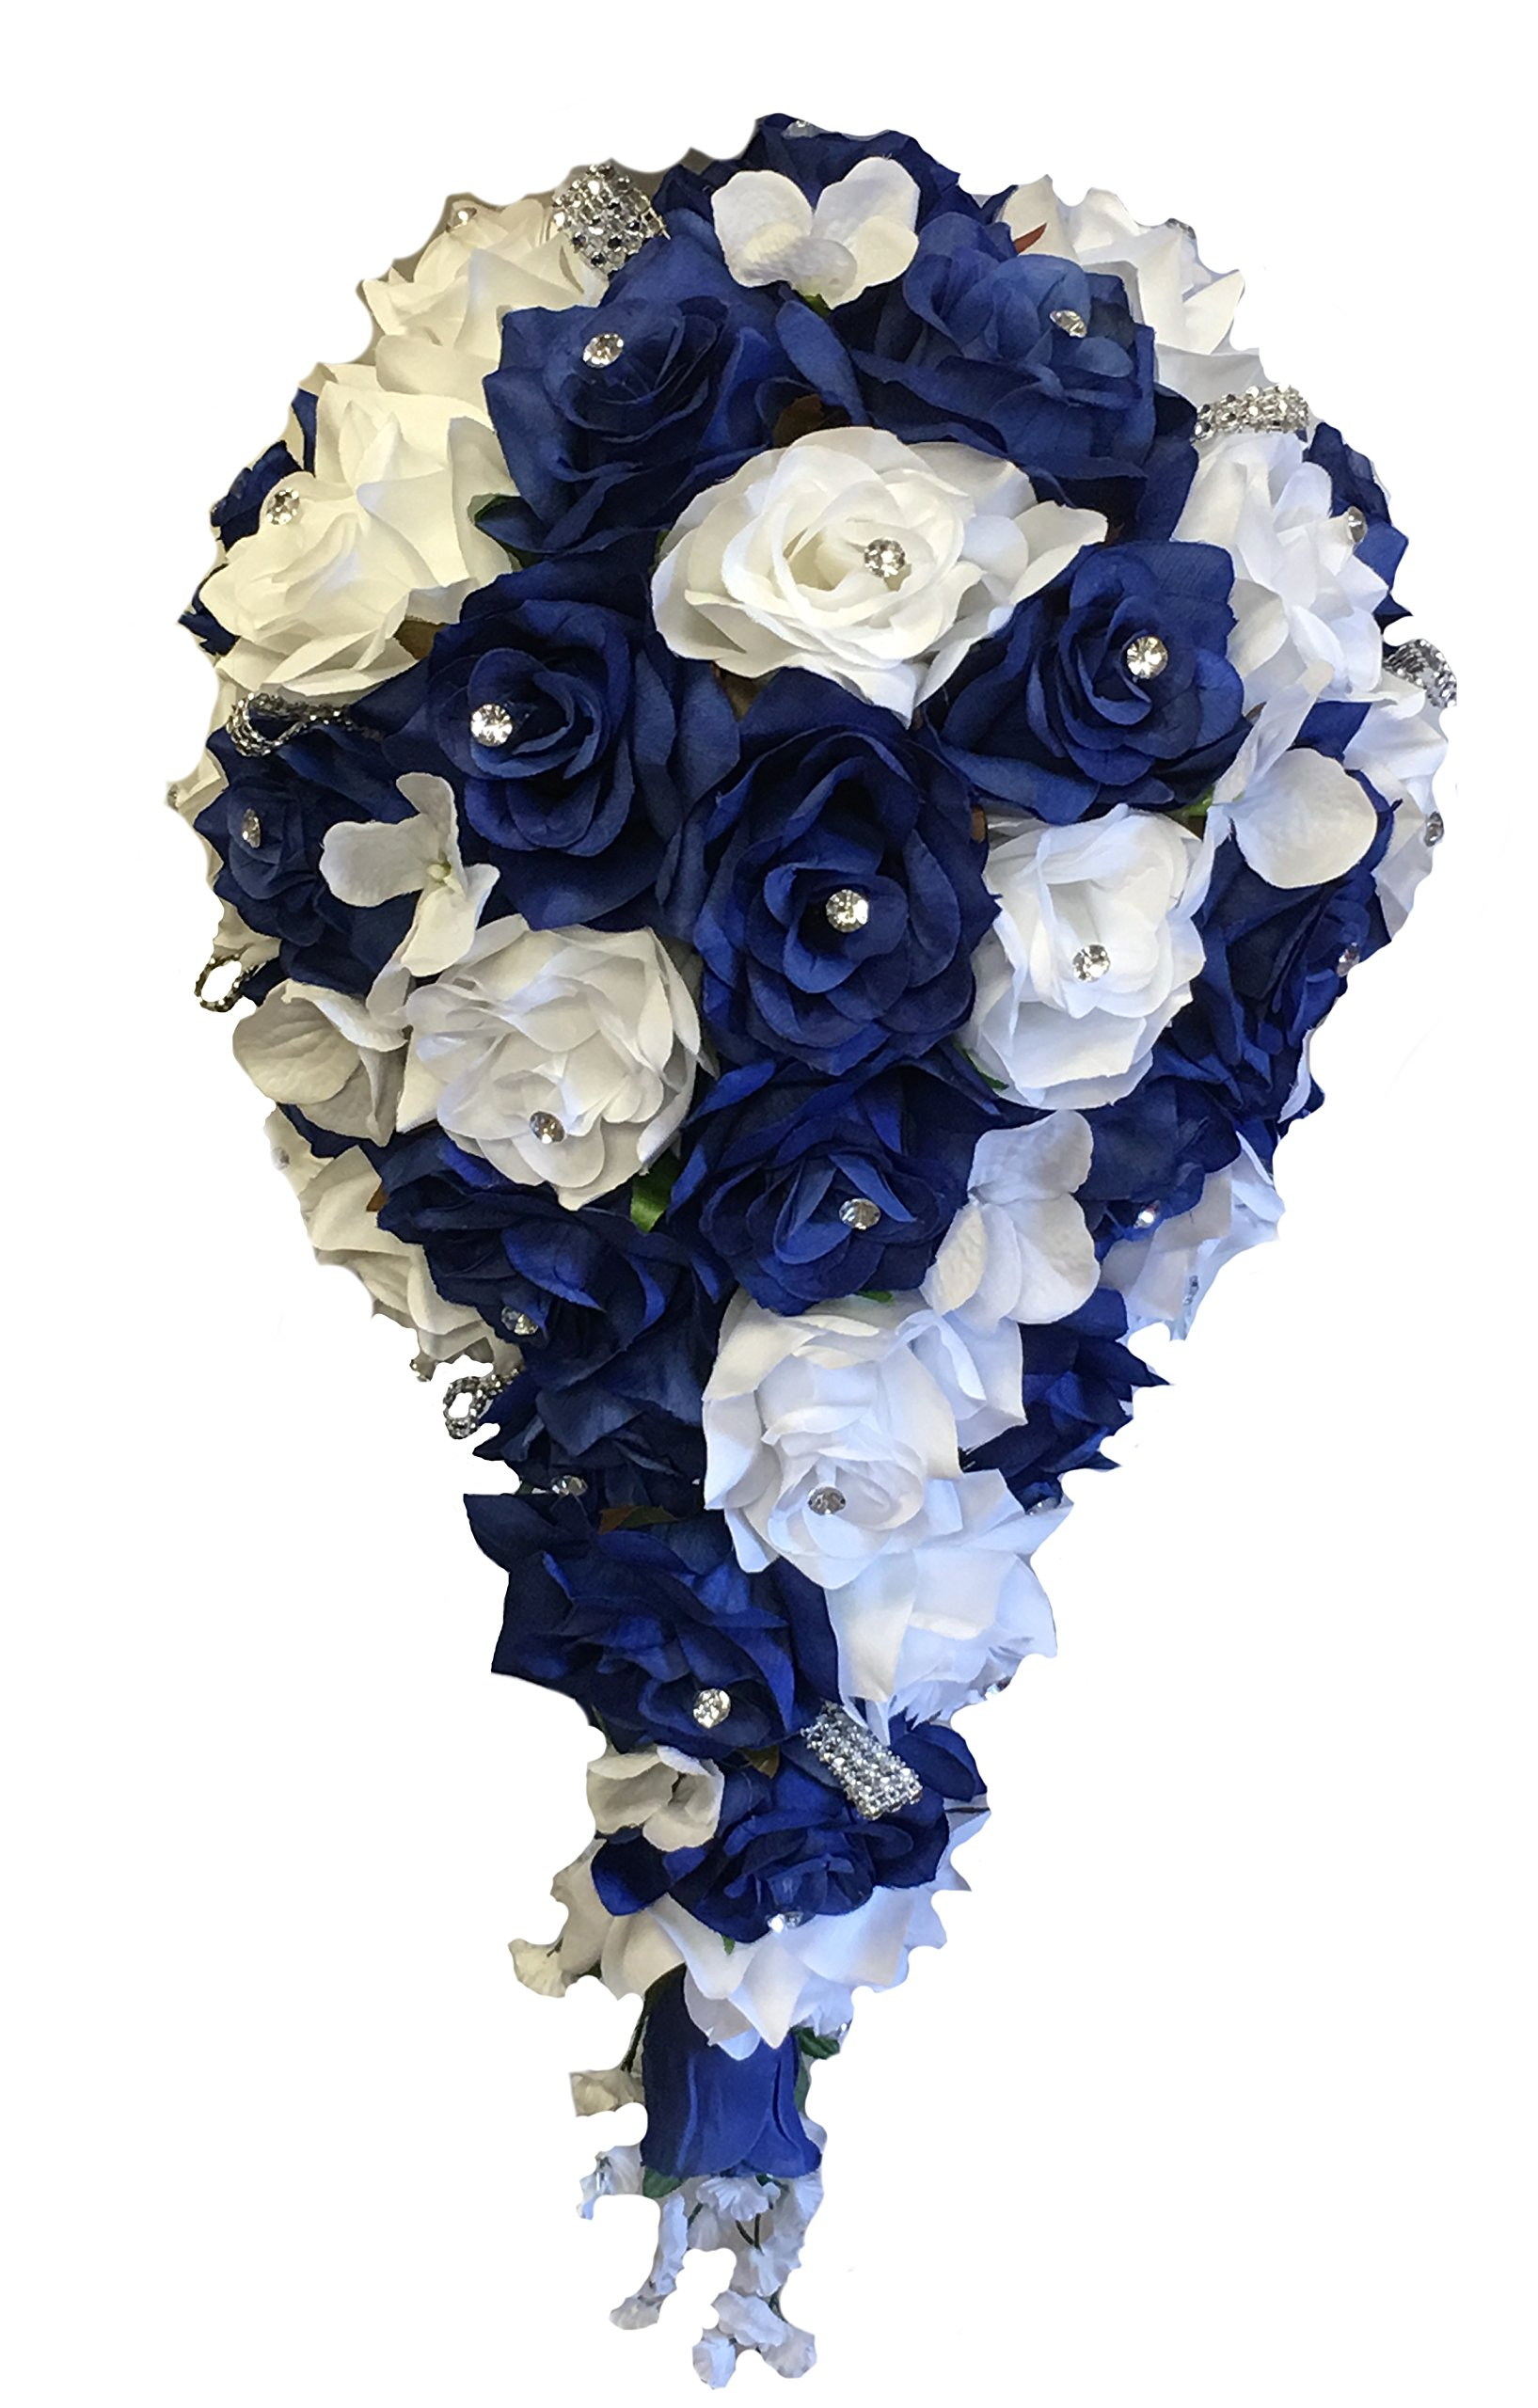 Angel-Isabella-2pc-Set-Cascade-Bridal-Bouquet-Boutonniere-Wbling-Royal-Blue-White-Silk-Flowers